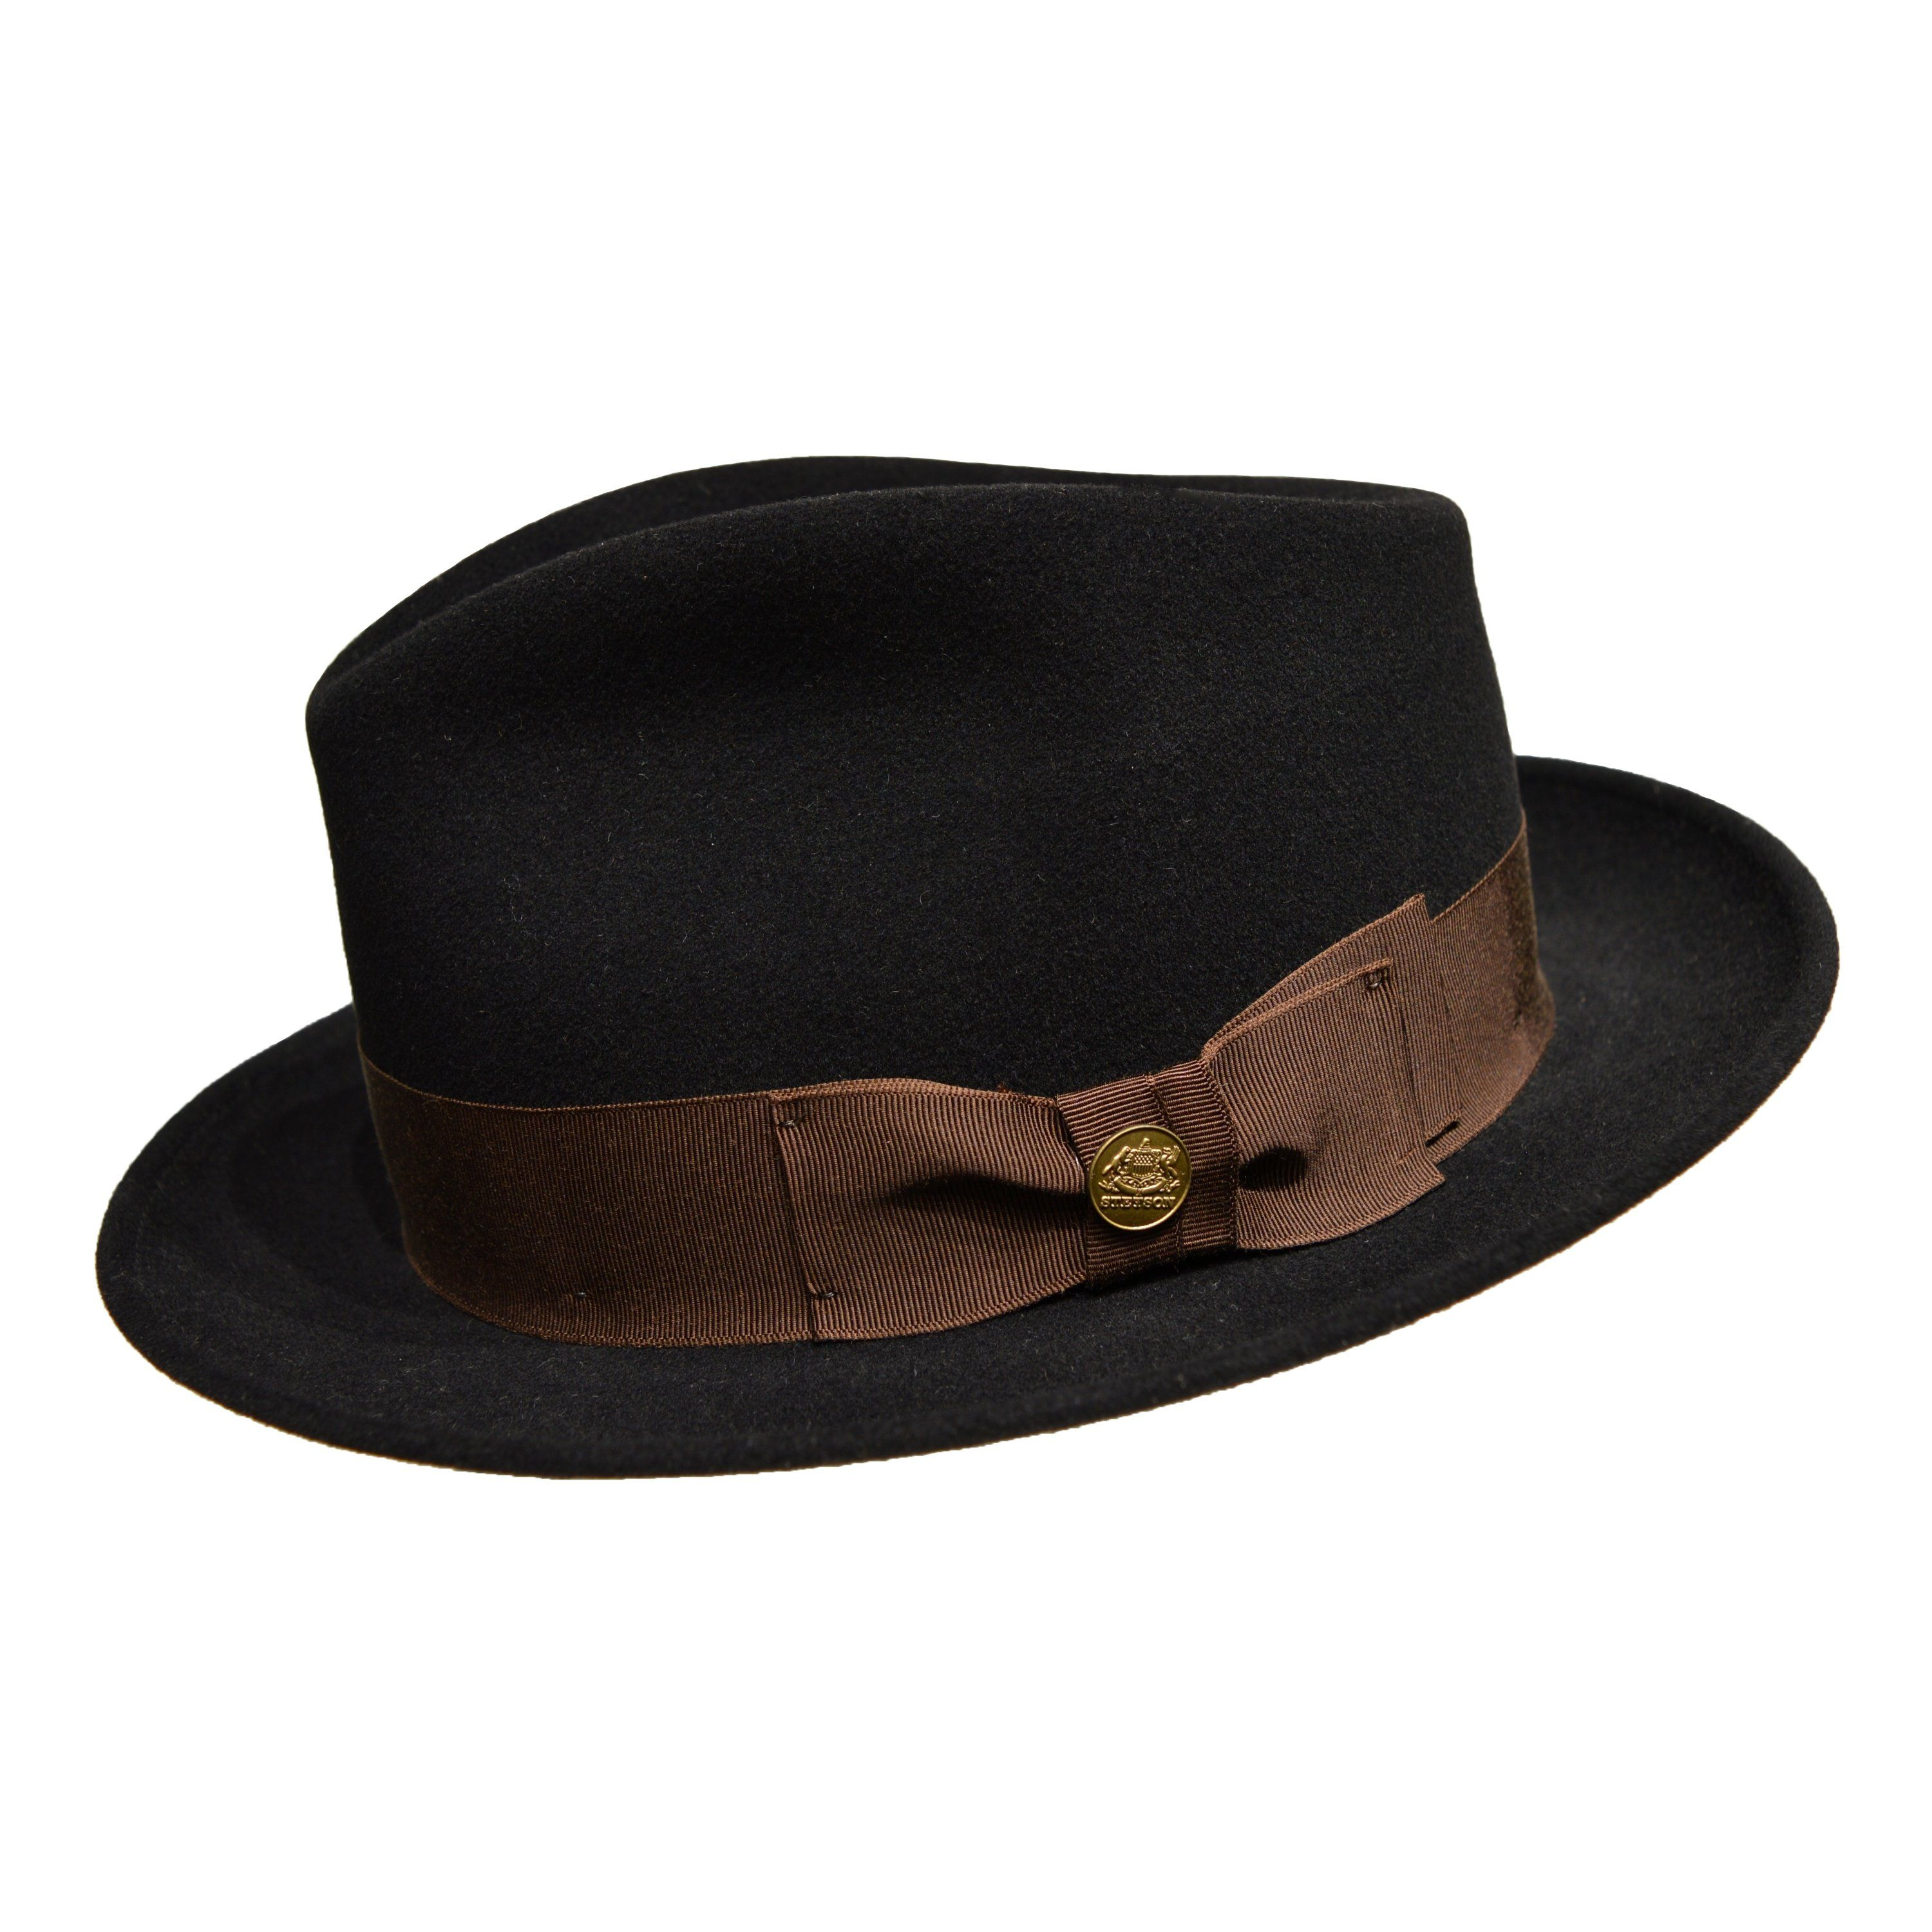 The Stetson Grayson Soft Felt Fedora is a handsome hat made from the  softest felt for ae9d88fdeb95